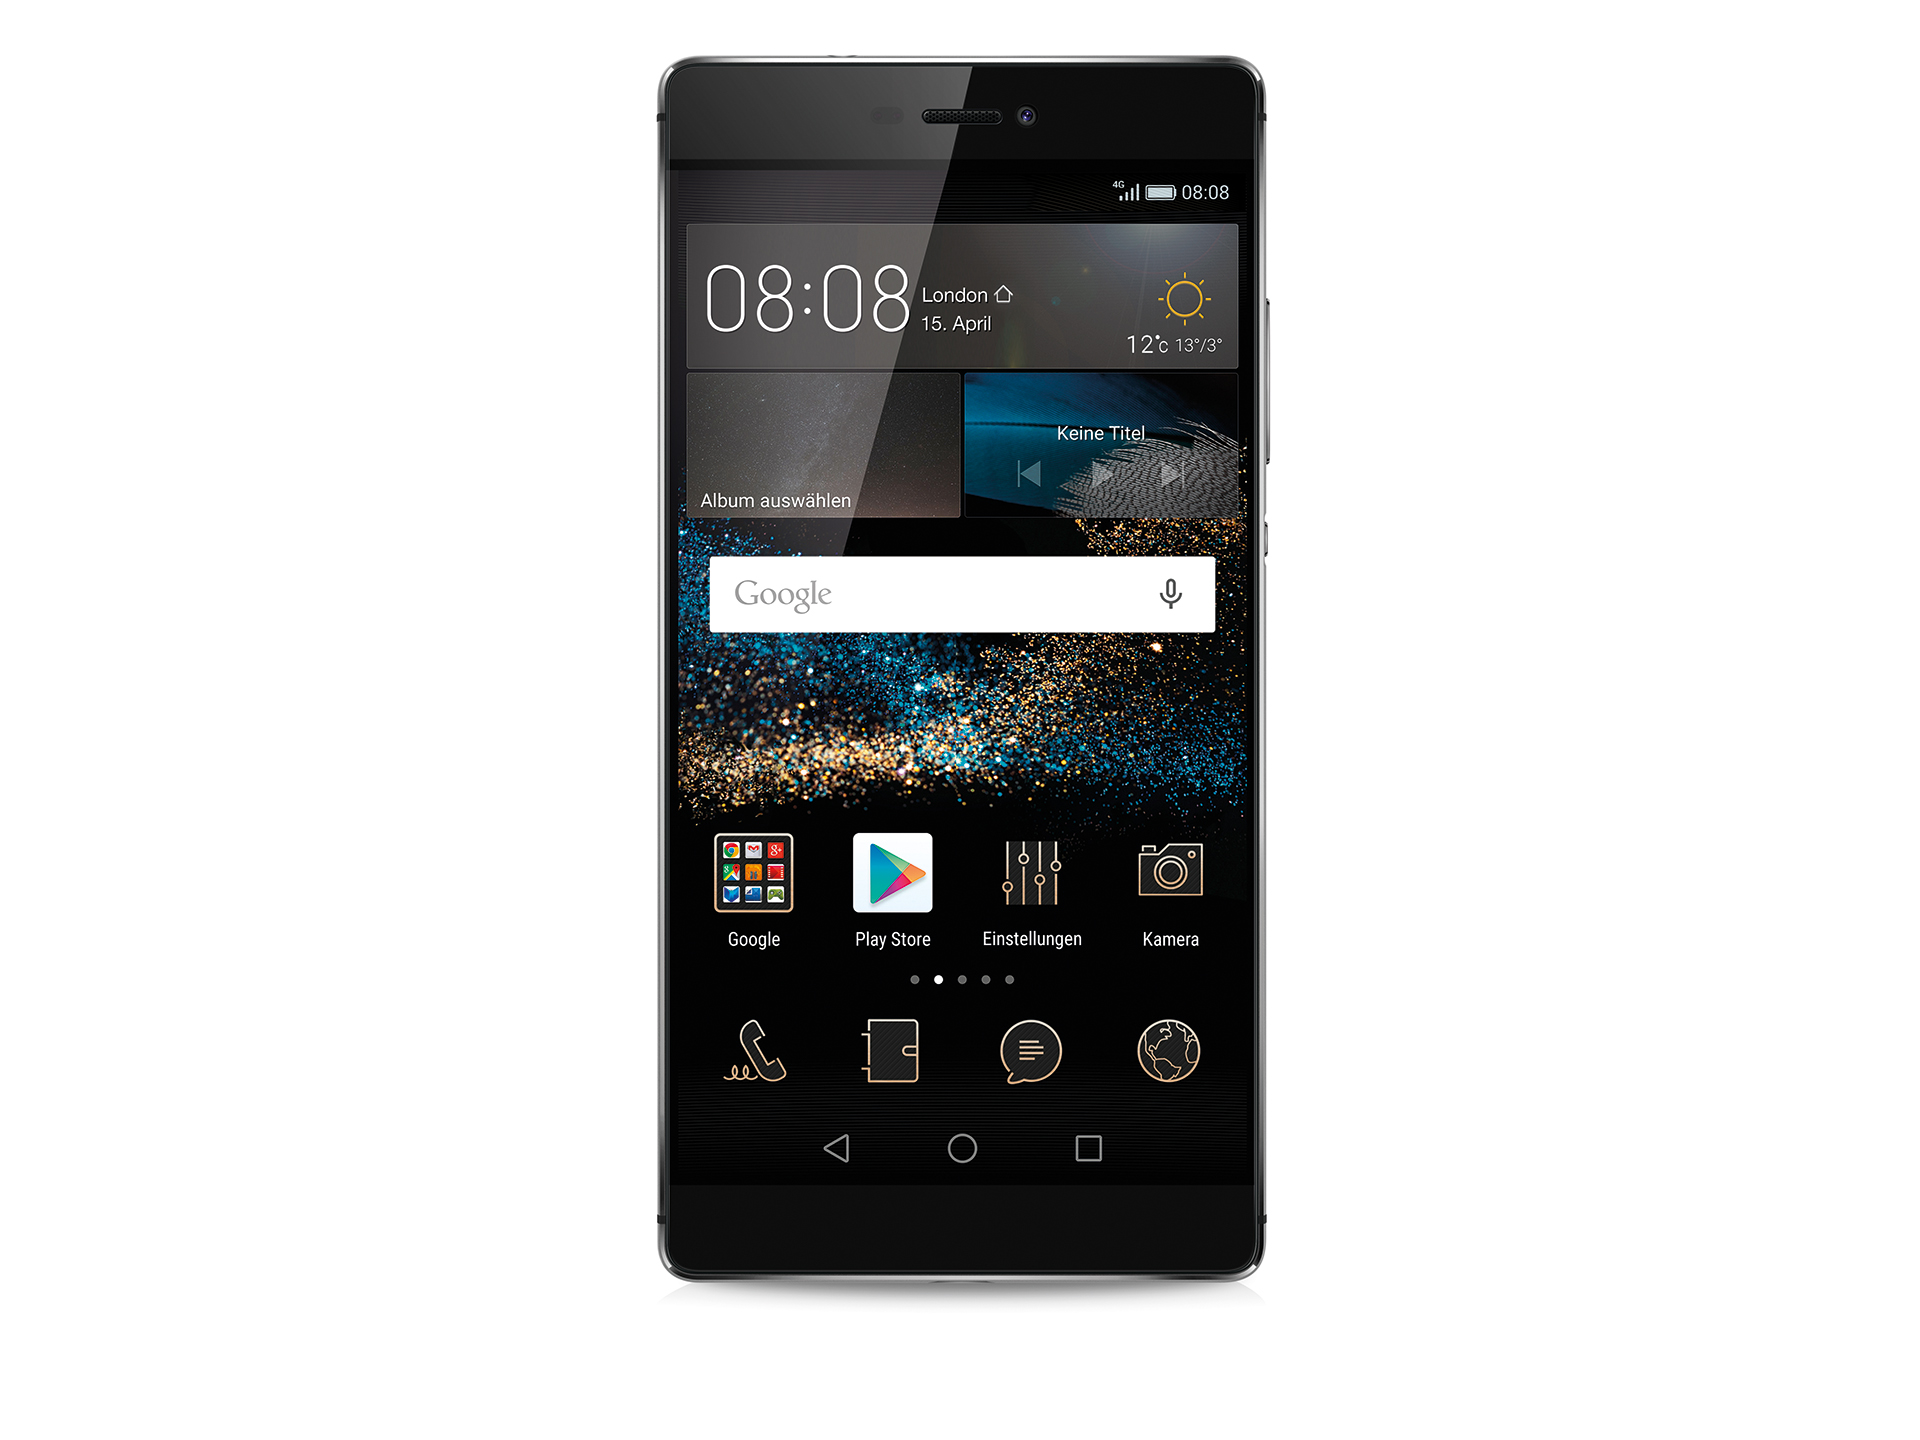 huawei p8 smartphone first impressions reviews. Black Bedroom Furniture Sets. Home Design Ideas